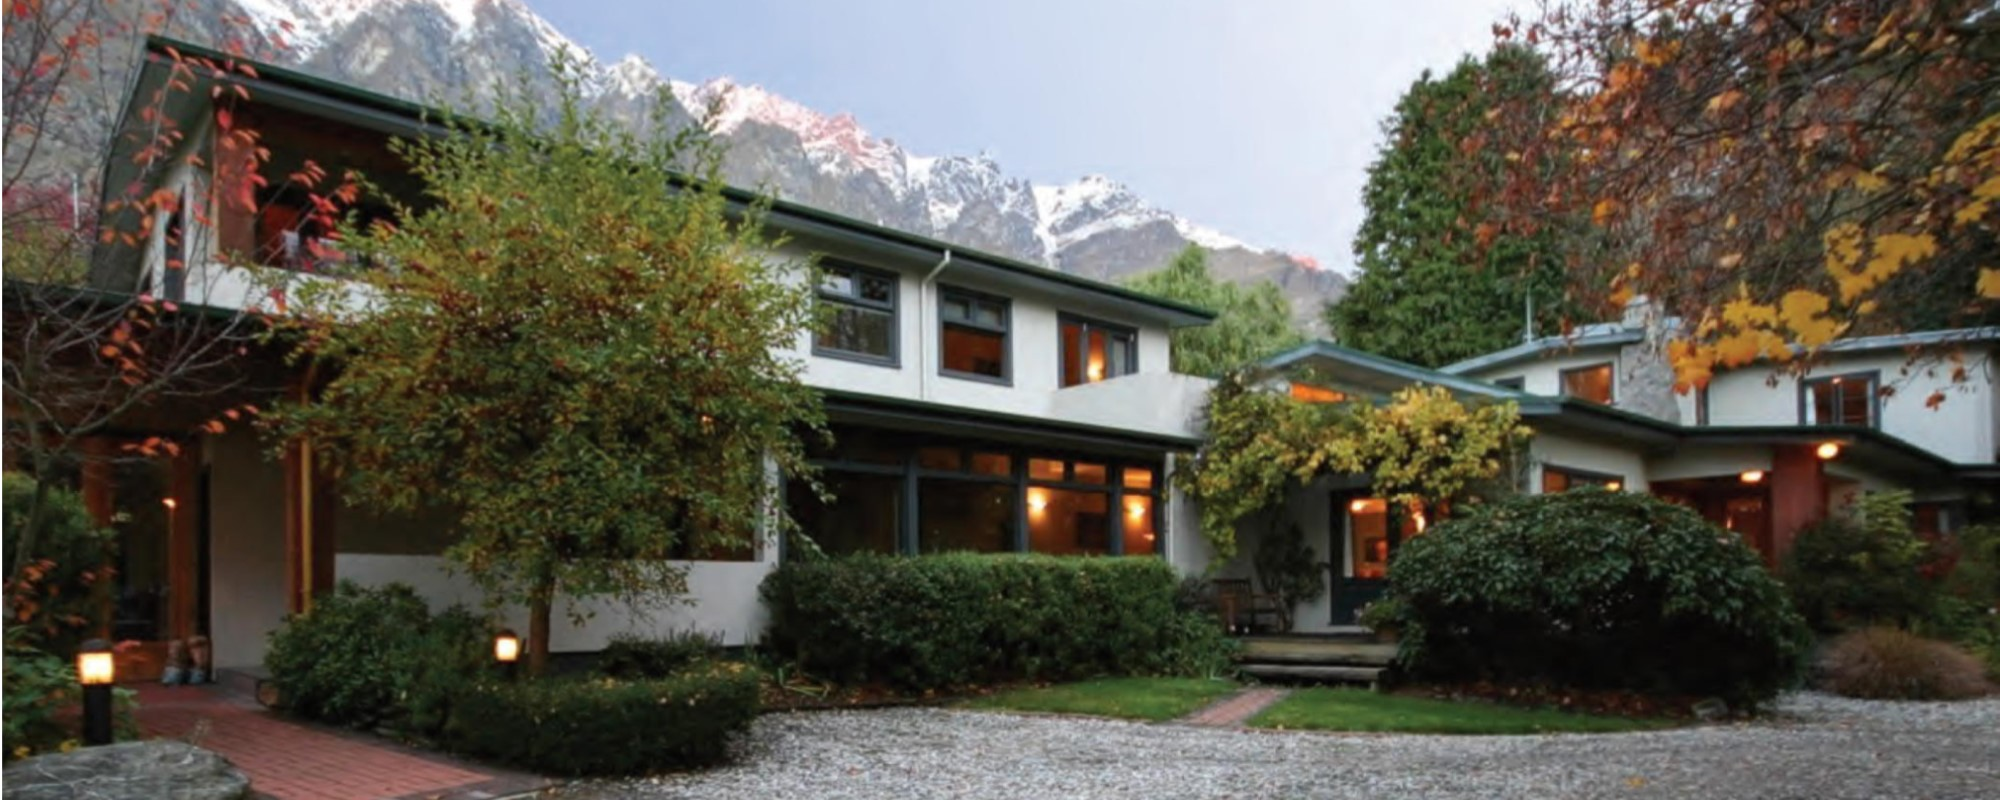 YWAM Queenstown's new base property